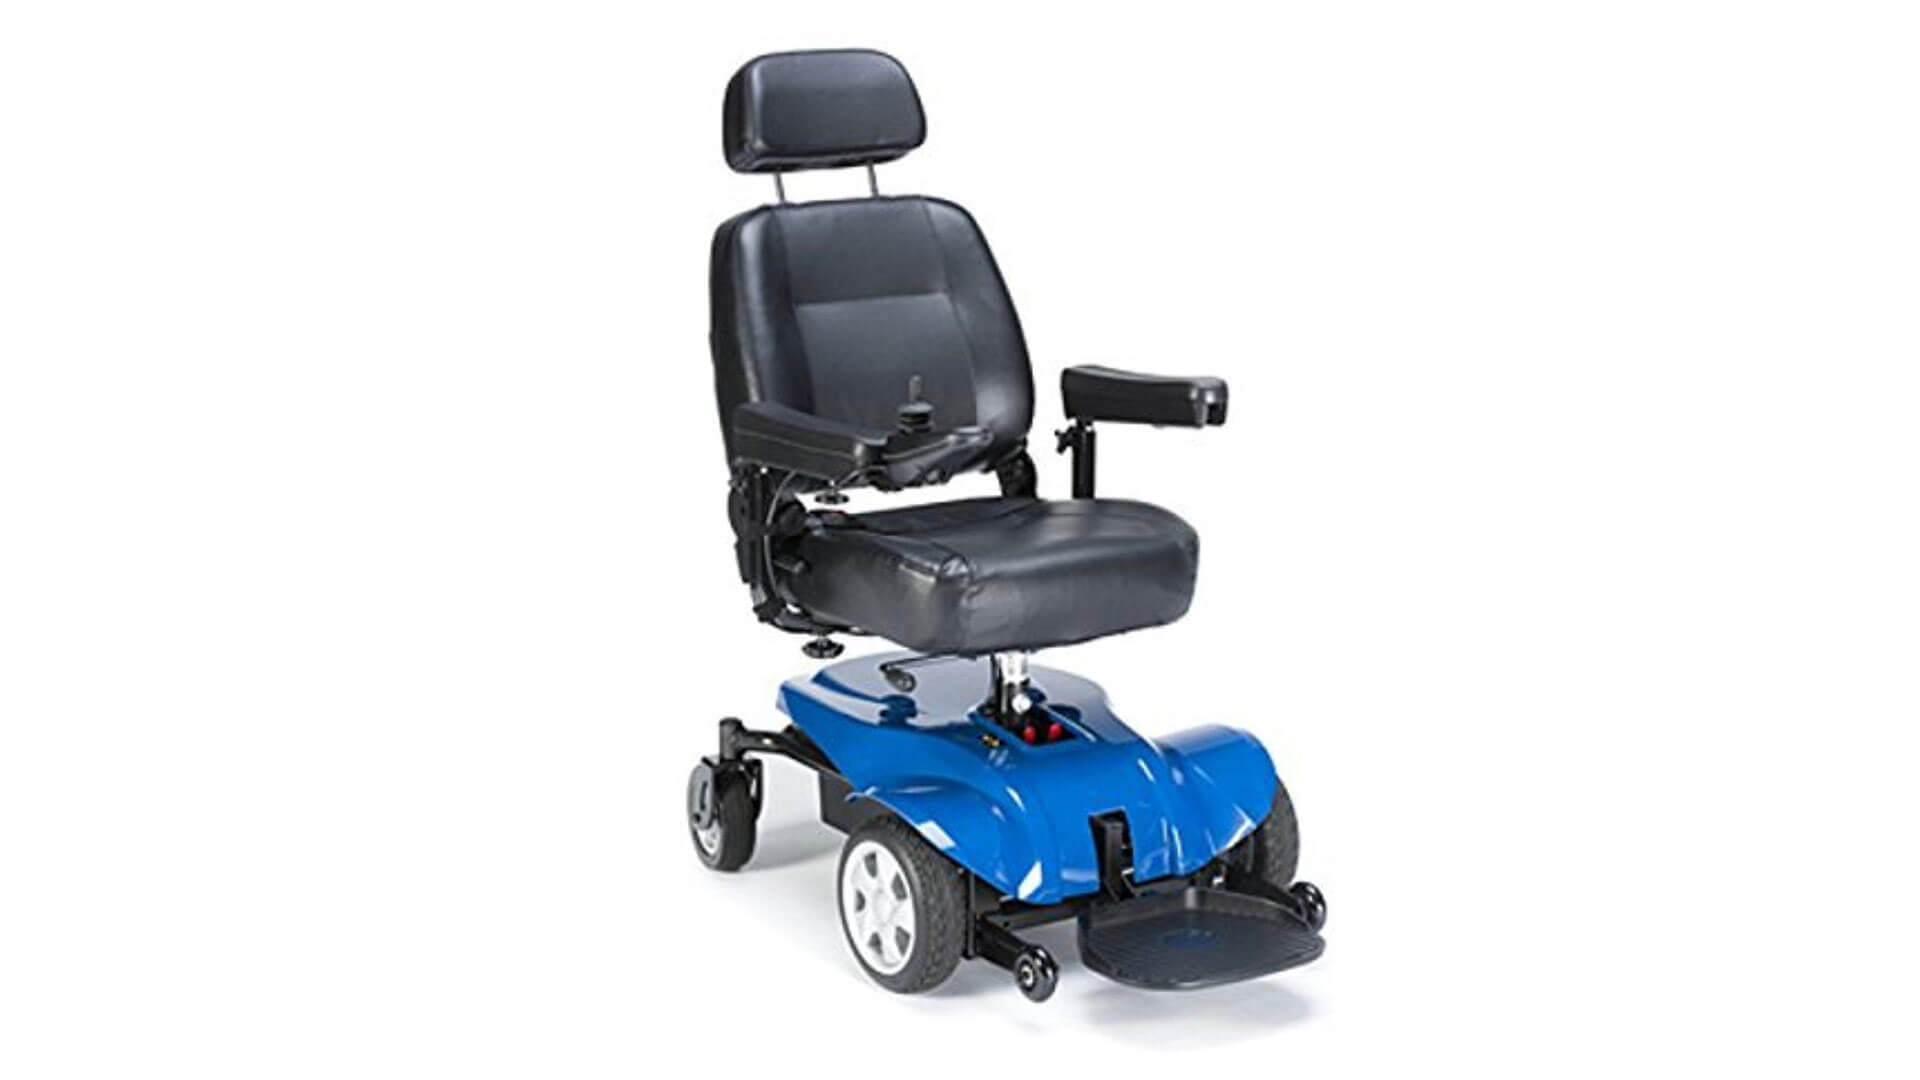 Pronto Power Chair Best Power Wheelchairs Top 3 Power Wheelchairs Features